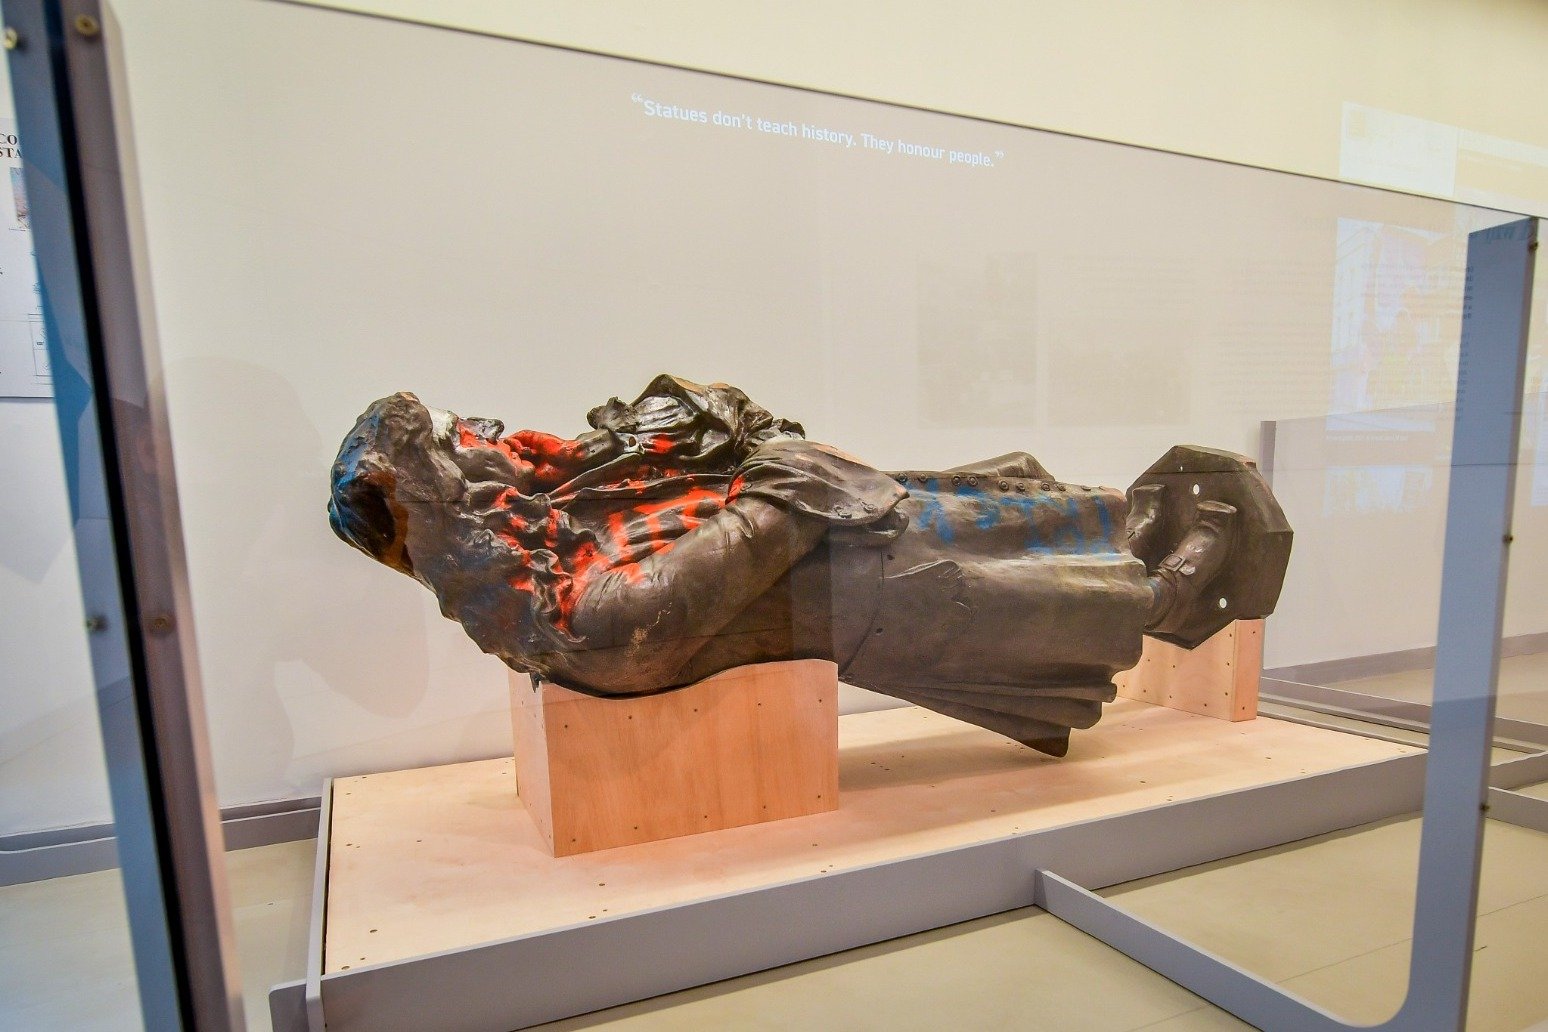 Toppled statue of slave trader Edward Colston goes on display in Bristol